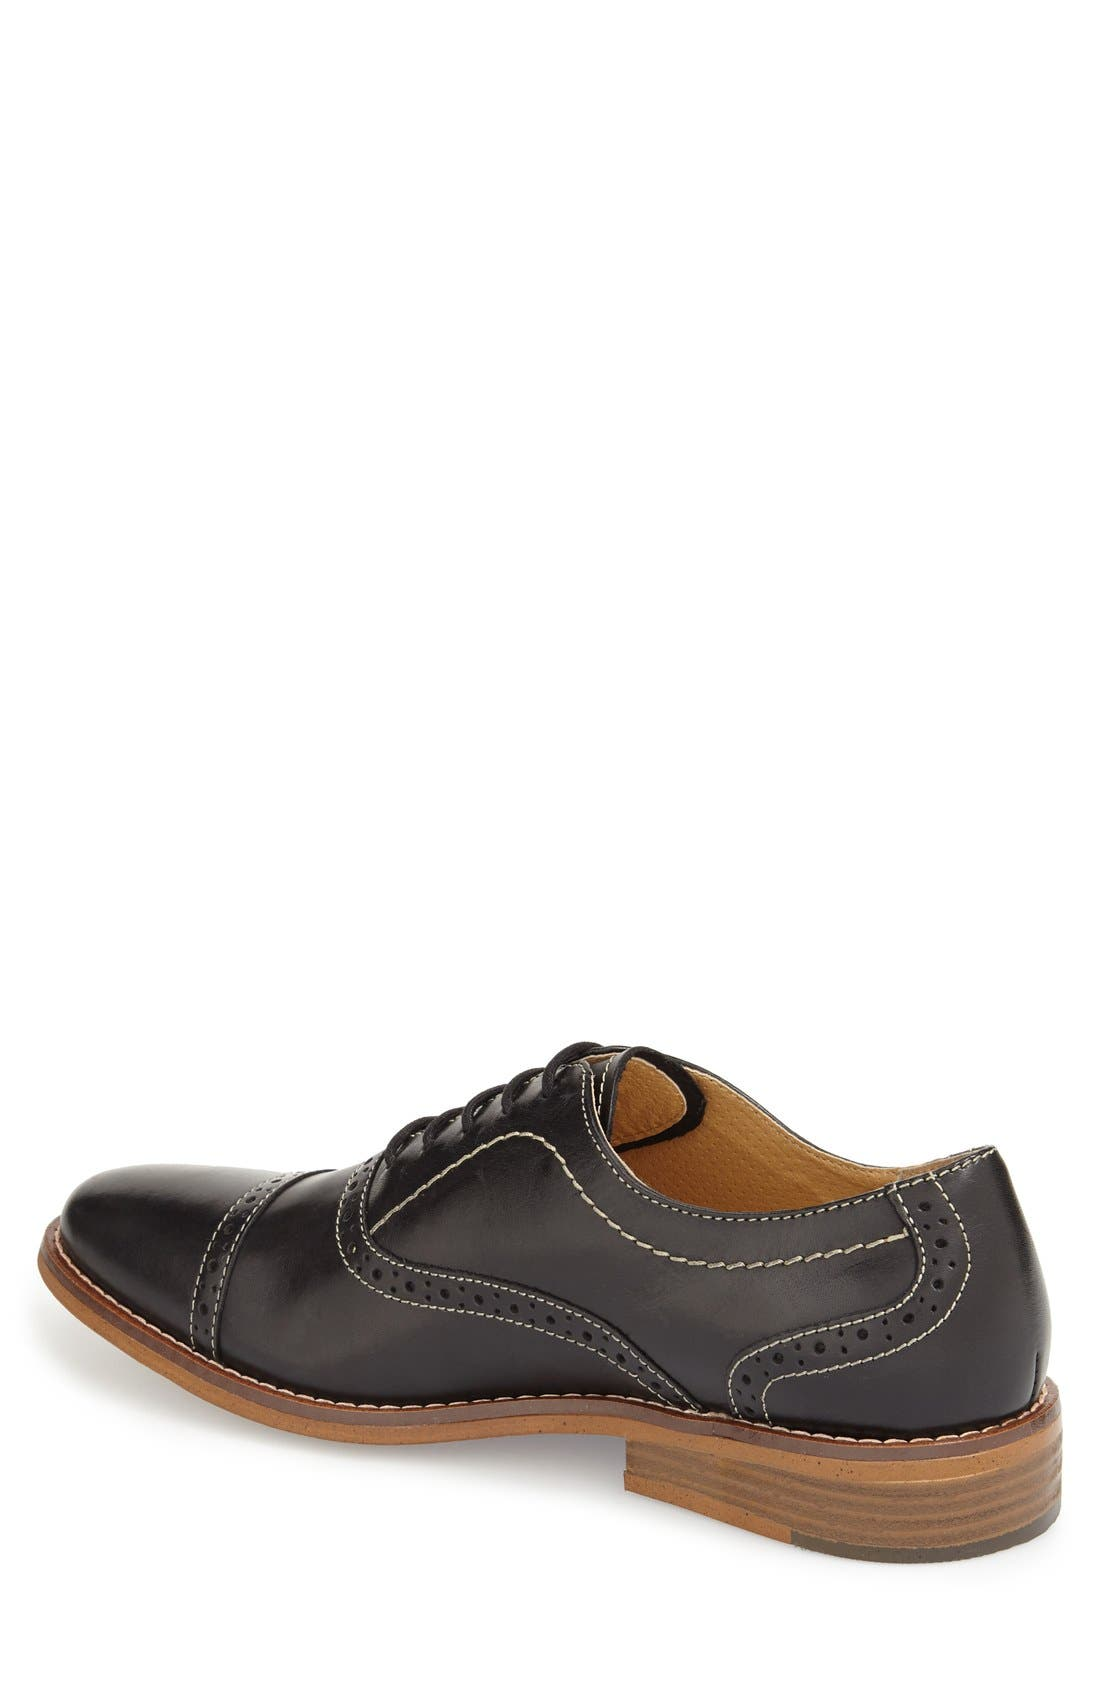 Alternate Image 2  - G.H. Bass & Co. 'Carnell' Cap Toe Oxford (Men)